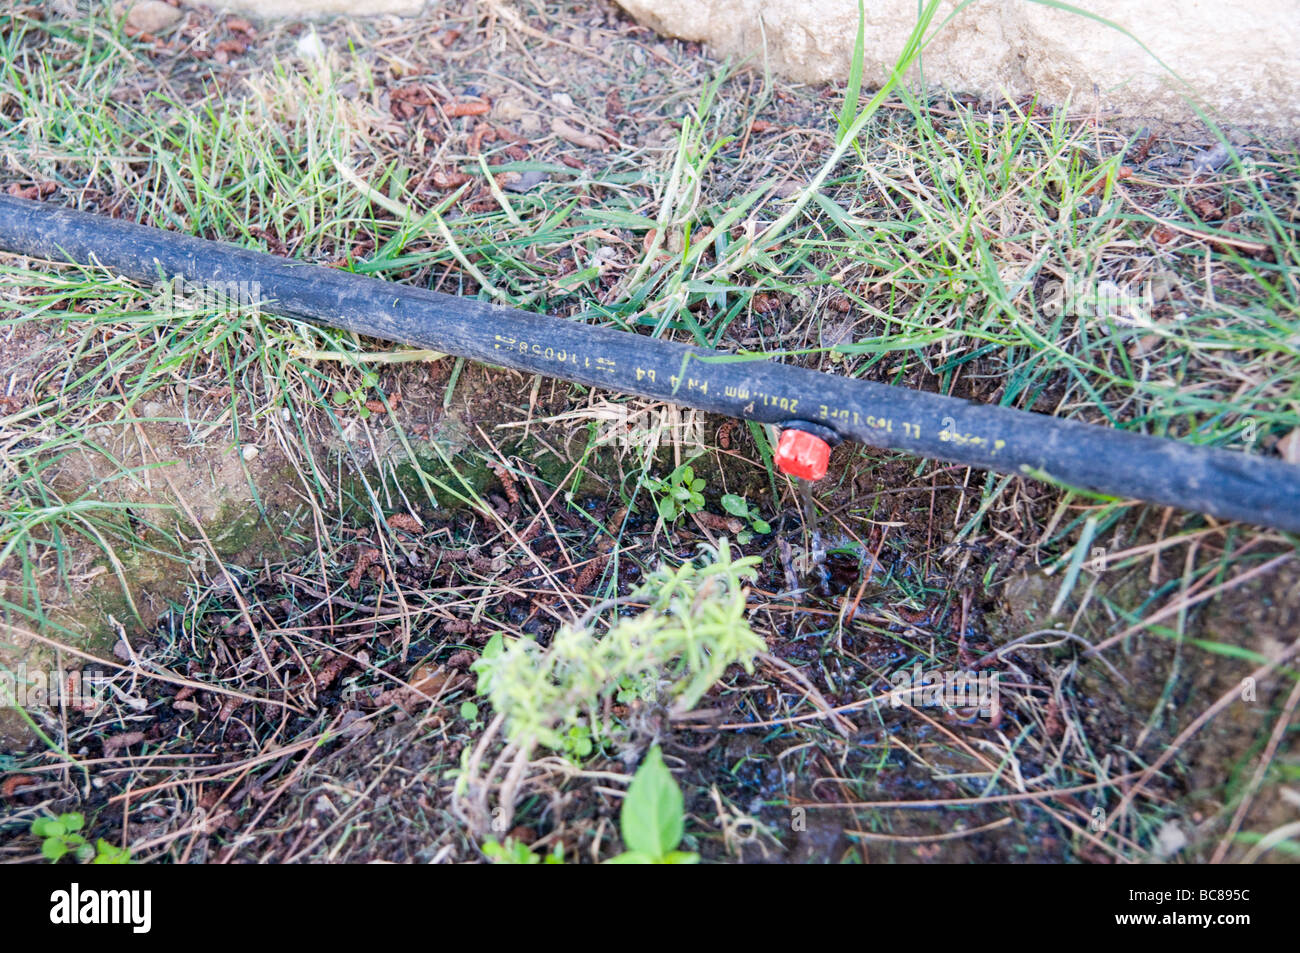 drip system for garden. Garden Watering System Drip Irrigation Plants In A Is An Efficient Way To Save Water For